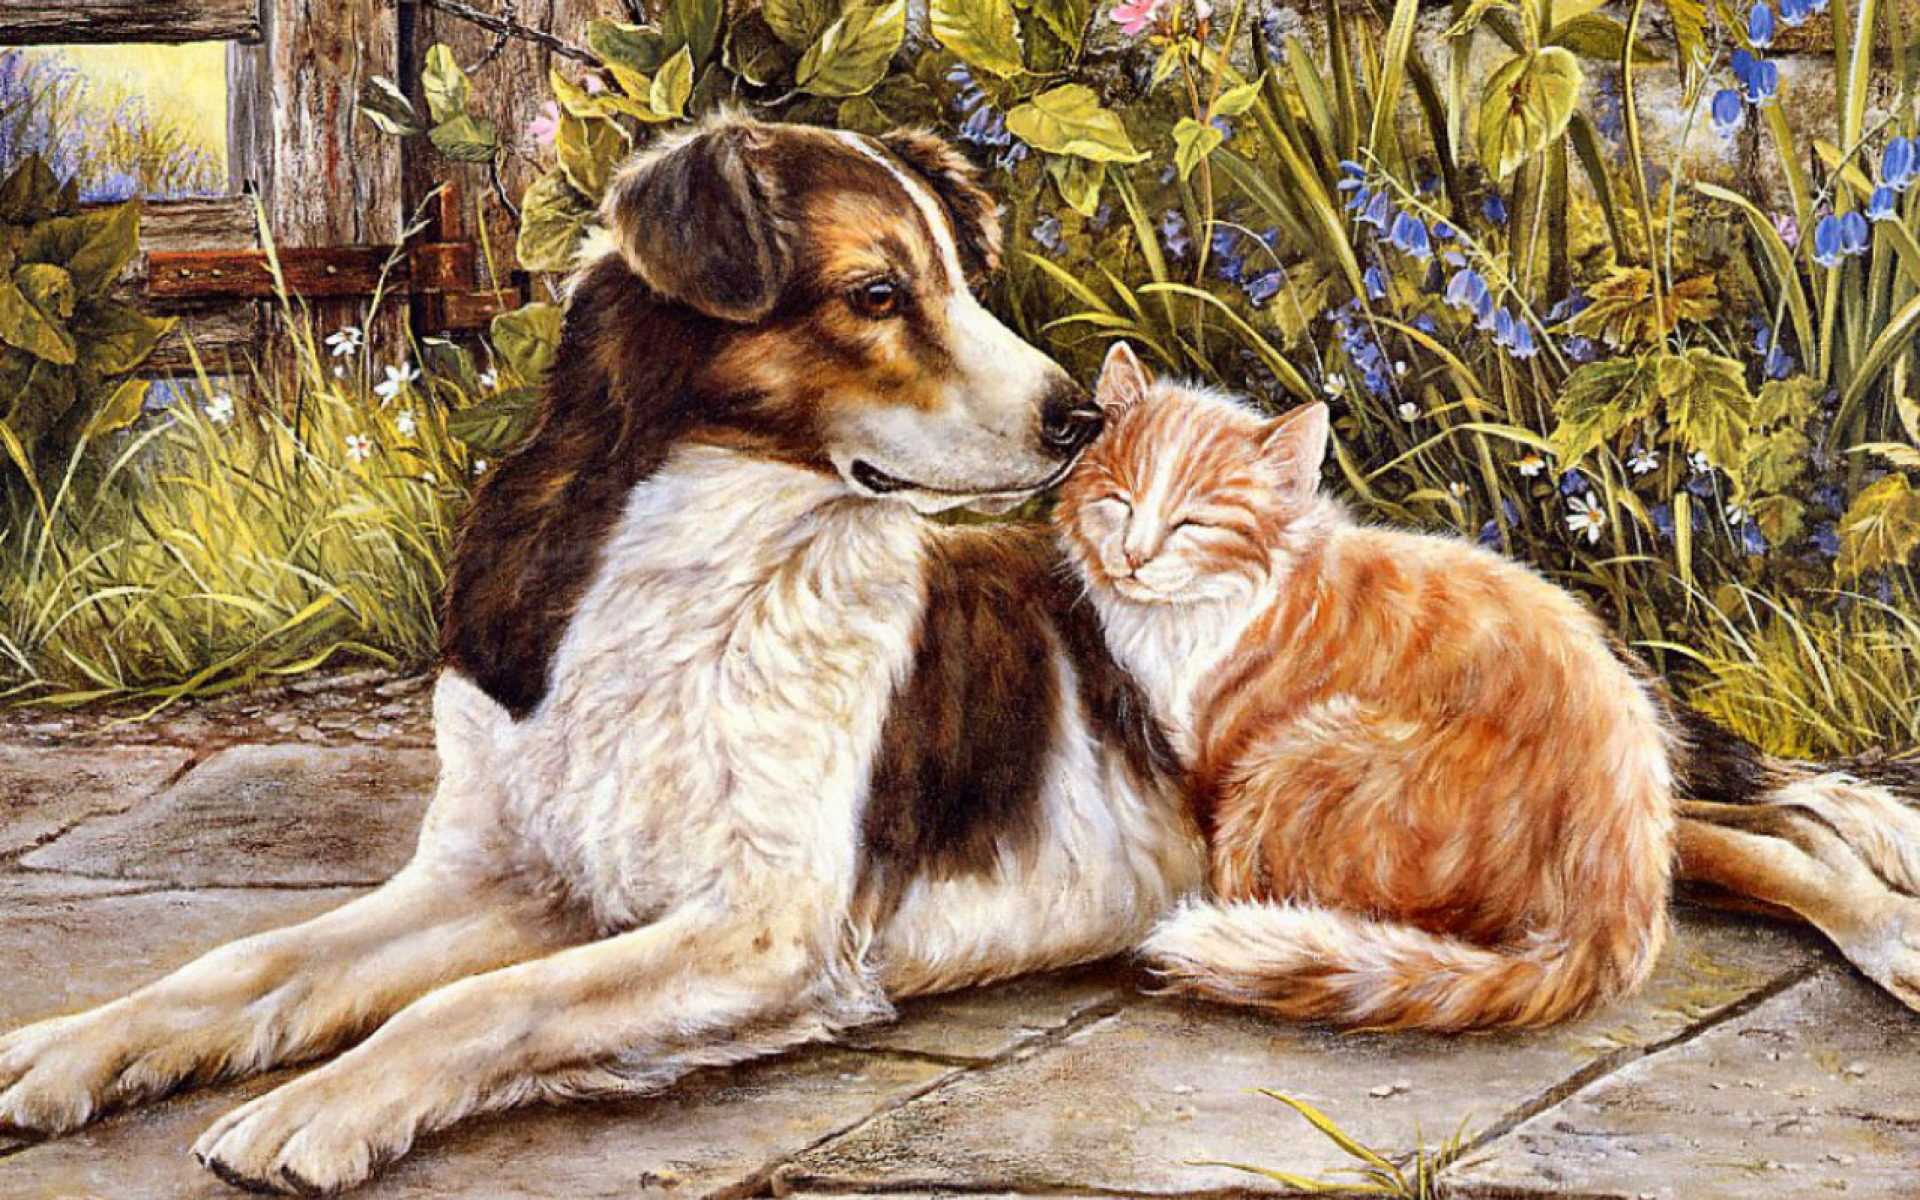 Sweet Wallpapers For Iphone Dog Amp Cat Sweet Friendship Wallpapers Dog Amp Cat Sweet